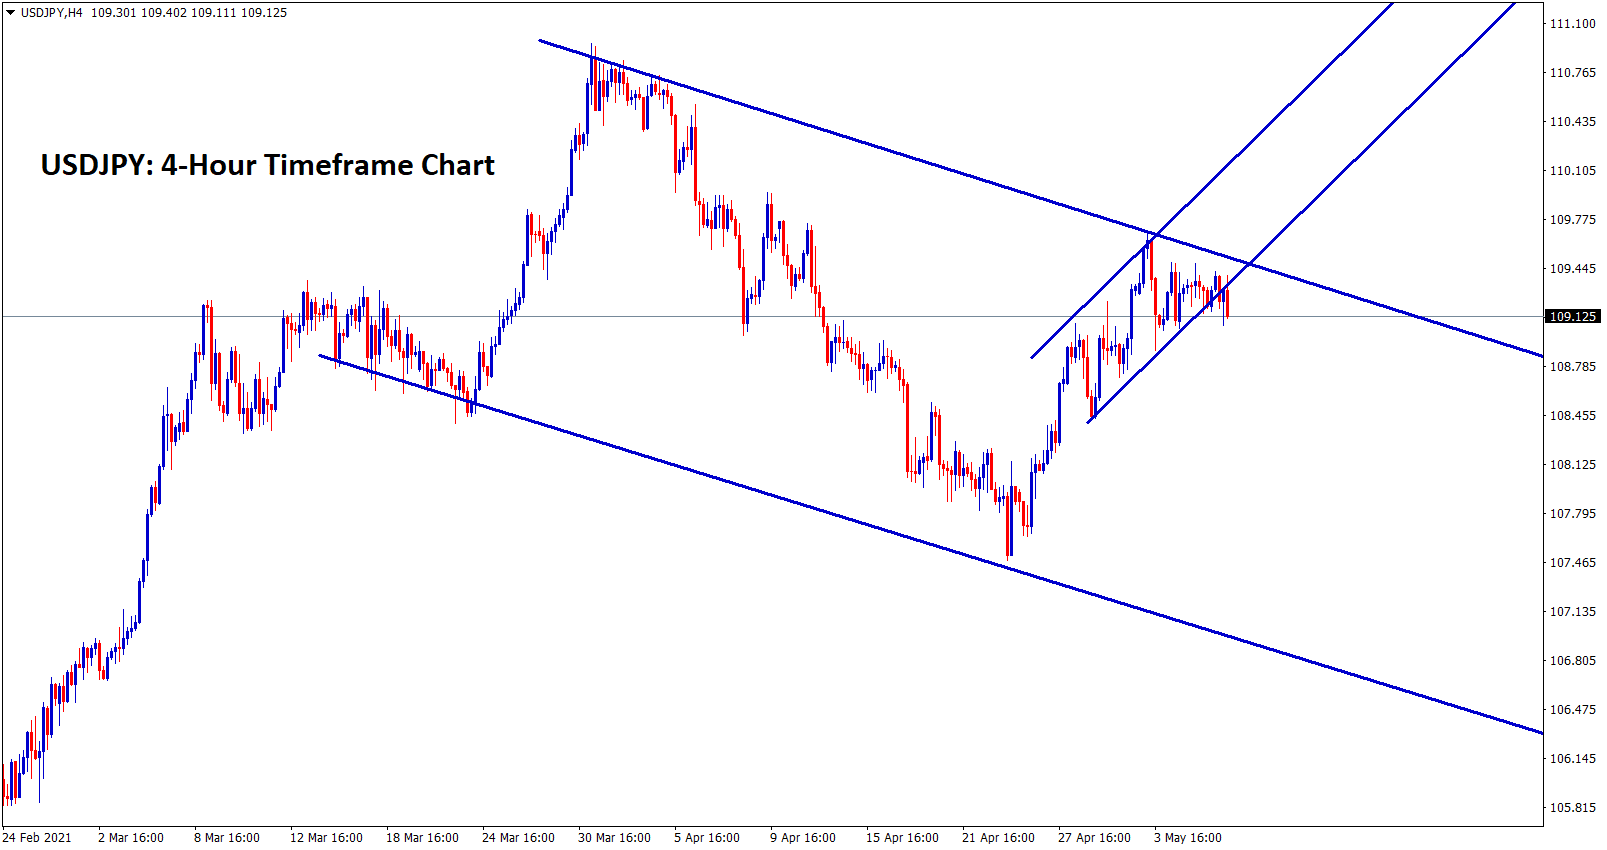 USDJPY trying to make a correction between the channel ranges